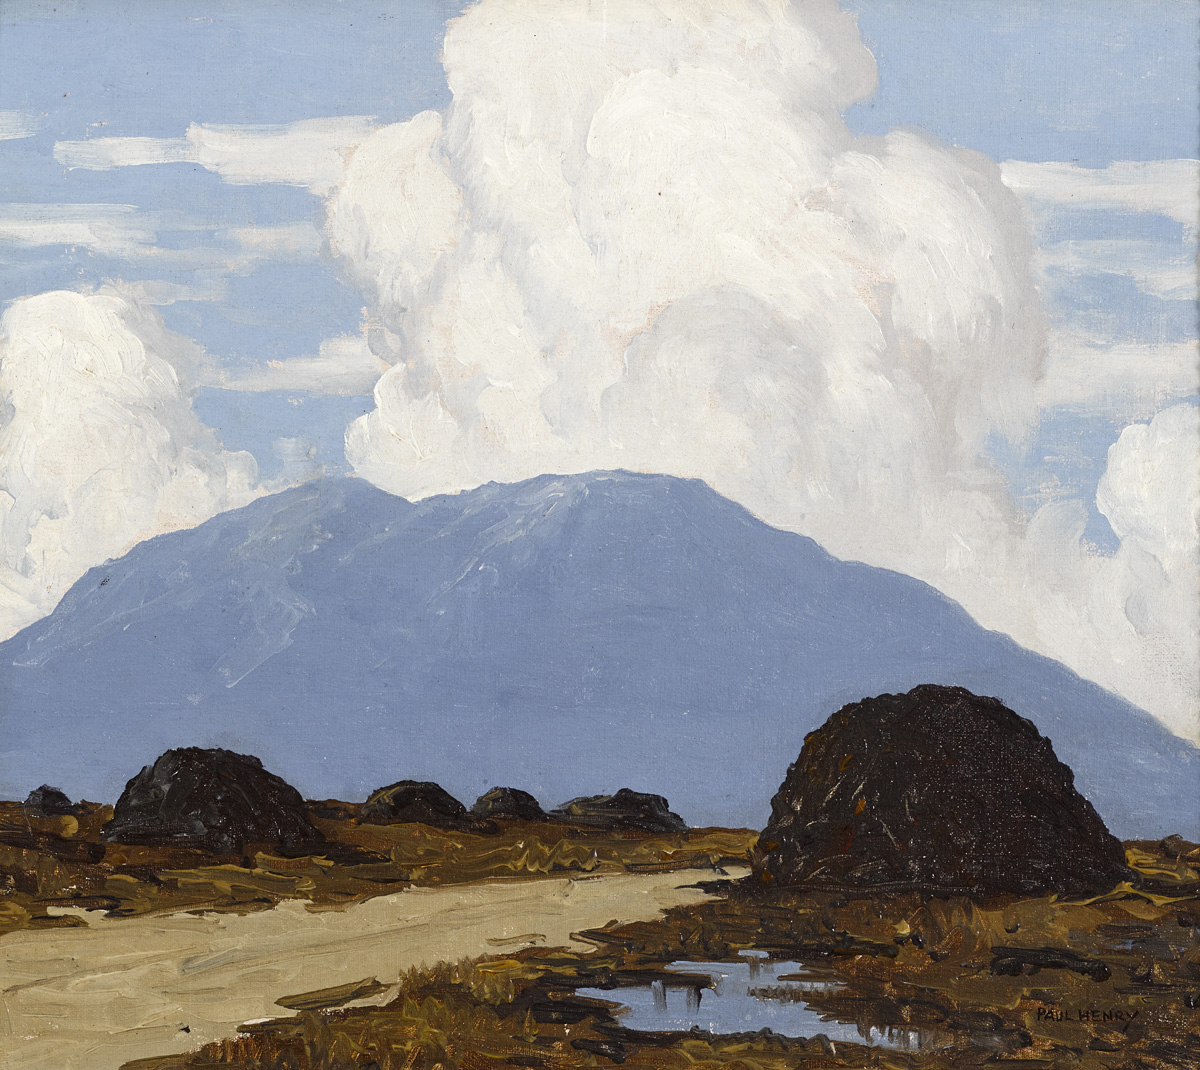 WEST OF IRELAND ROAD THROUGH THE BOG, c.1932-1935 by Paul Henry sold for €82,000 at Whyte's Auctions